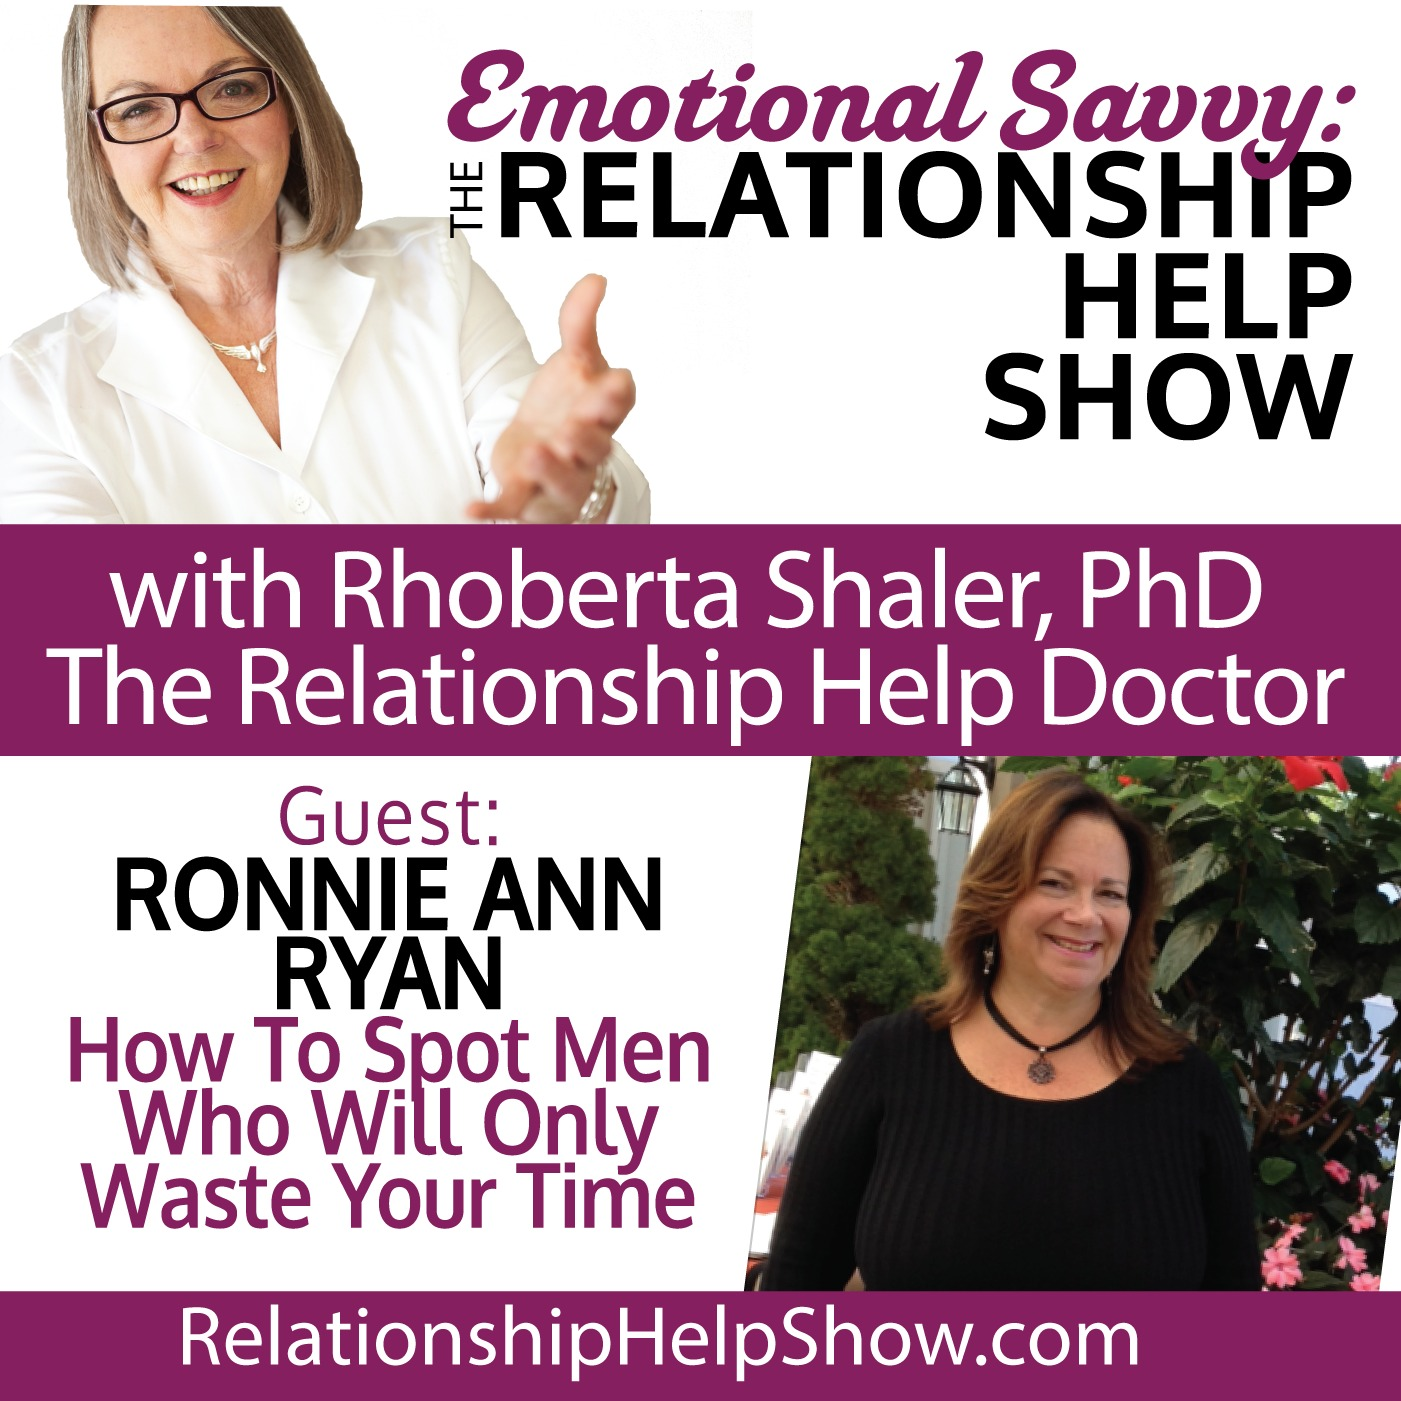 Dating? How to Spot Men Who'll Only Waste Your Time  GUEST Ronnie Ann Ryan